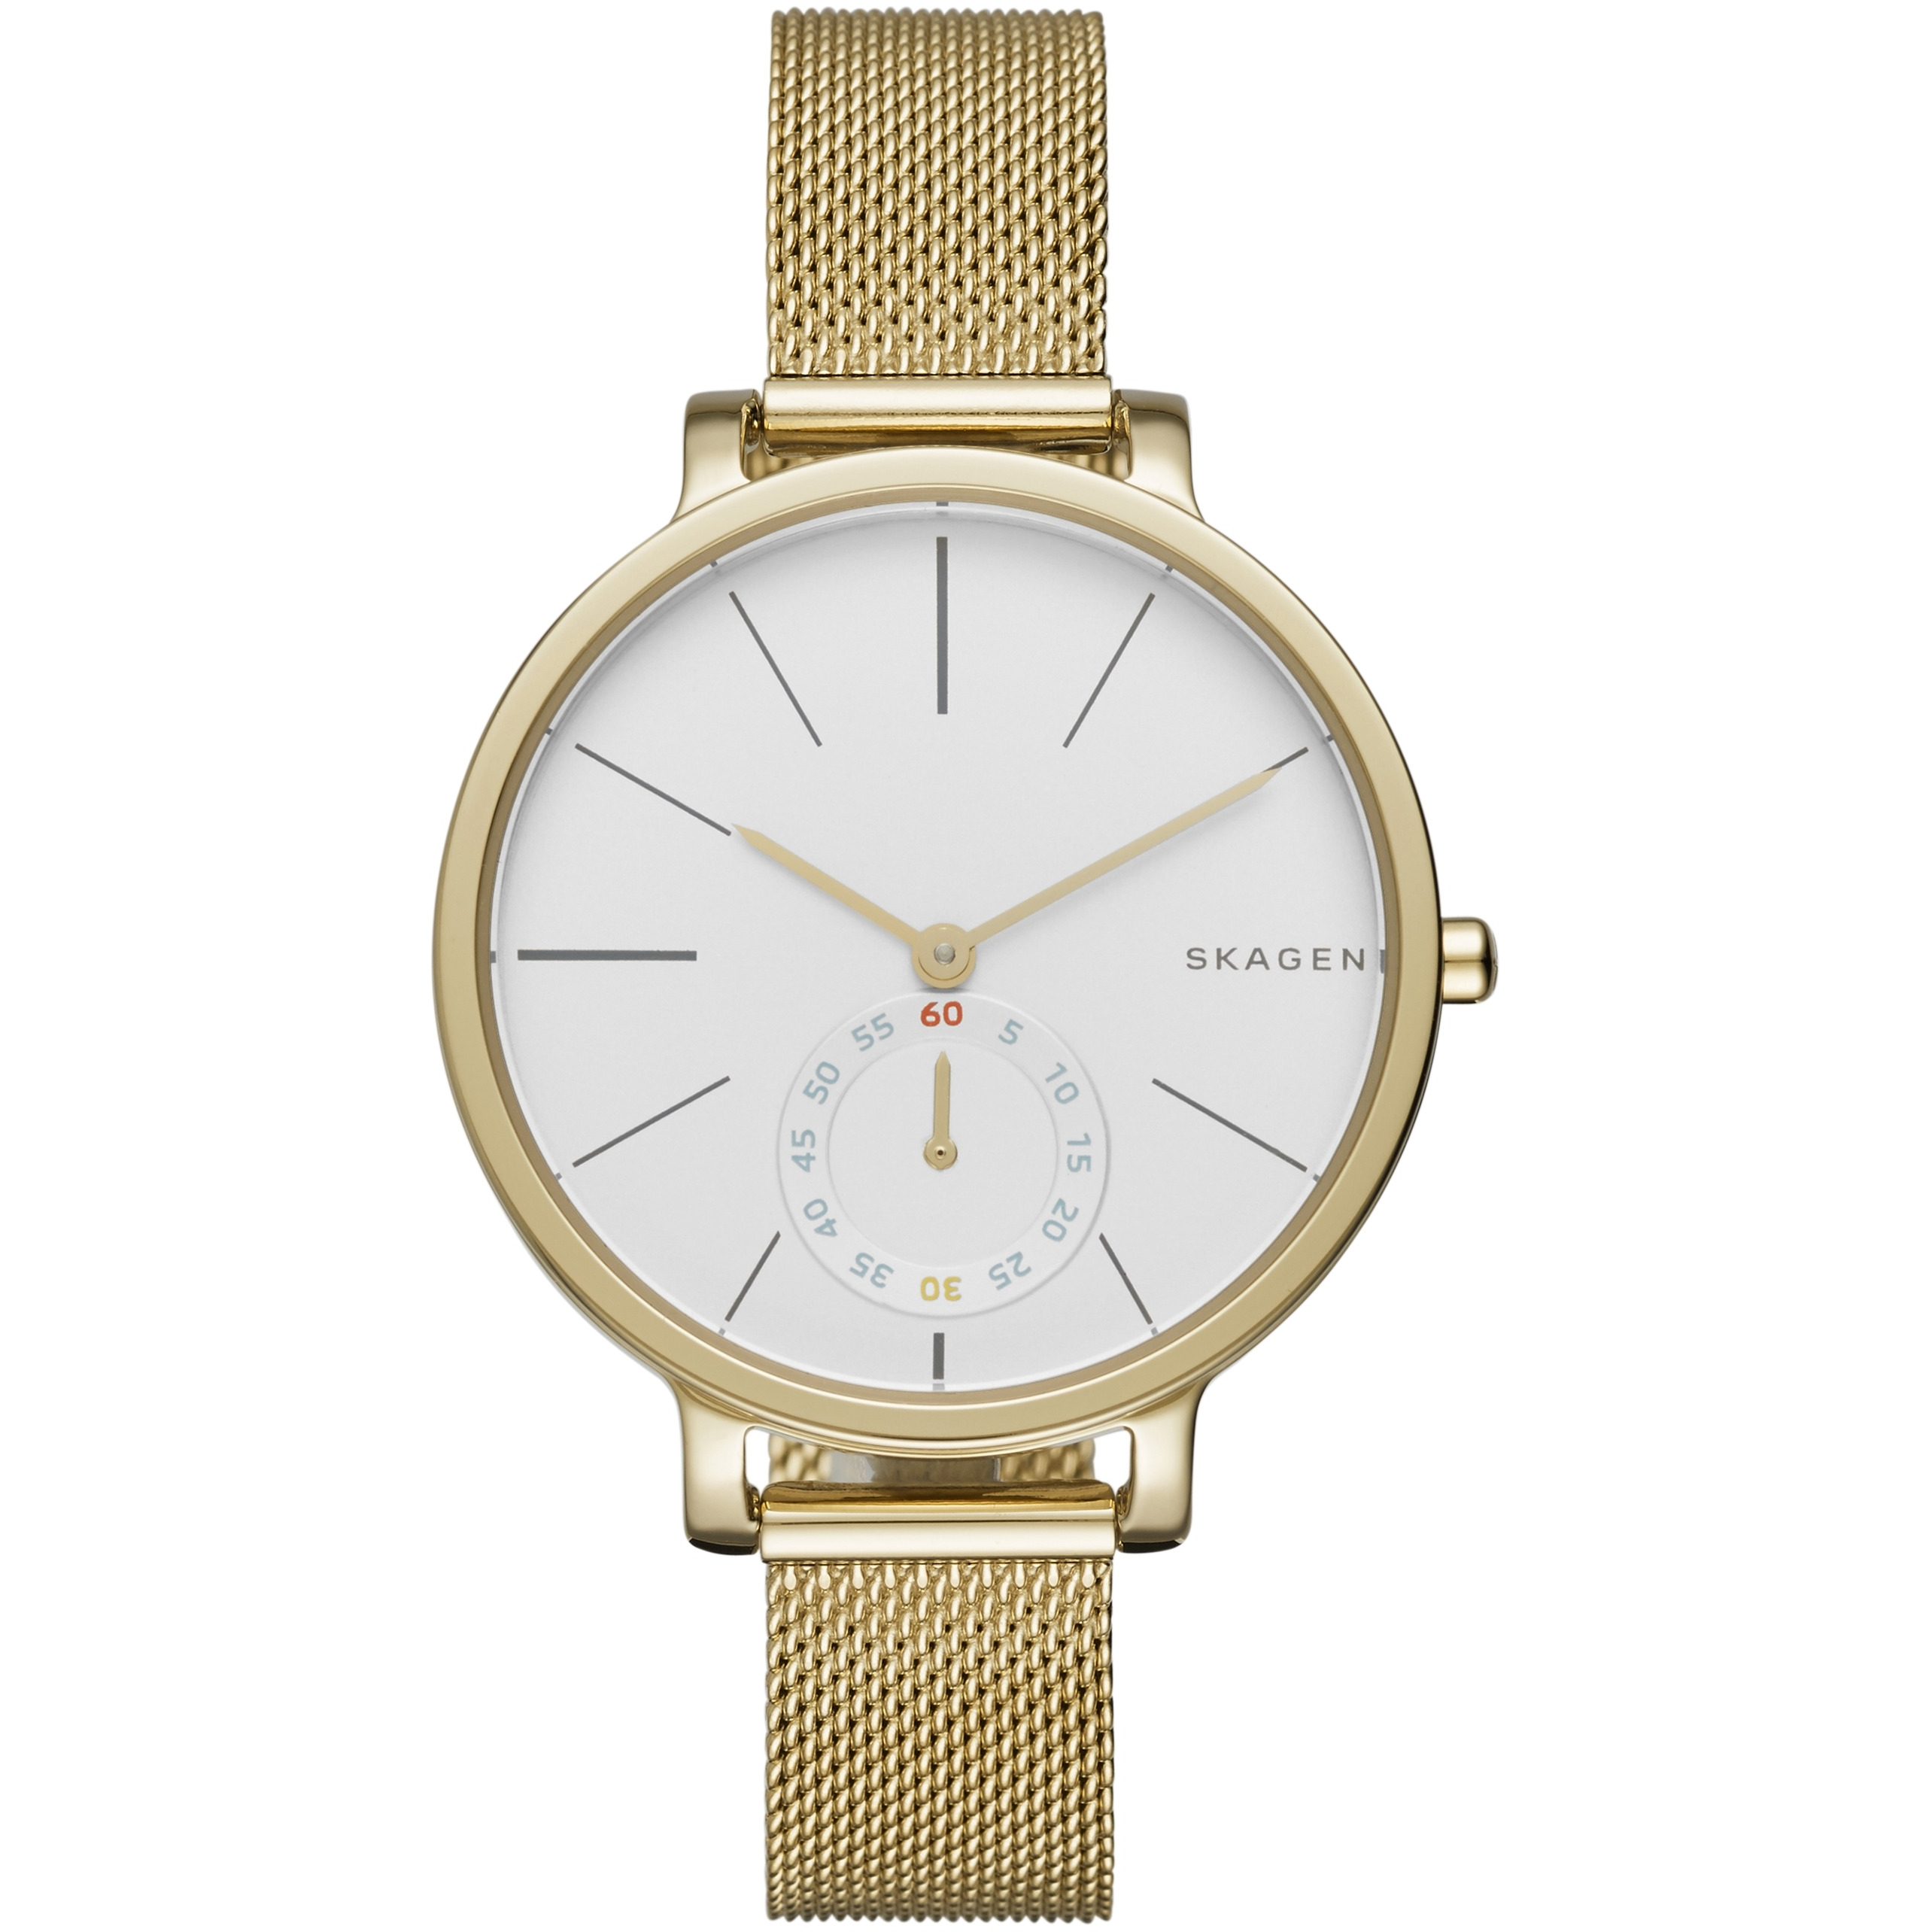 skagen belk watches rectangular p a layer tone zoom desktop steel watch src womens hagen women comp dwp gold product prev s mesh next